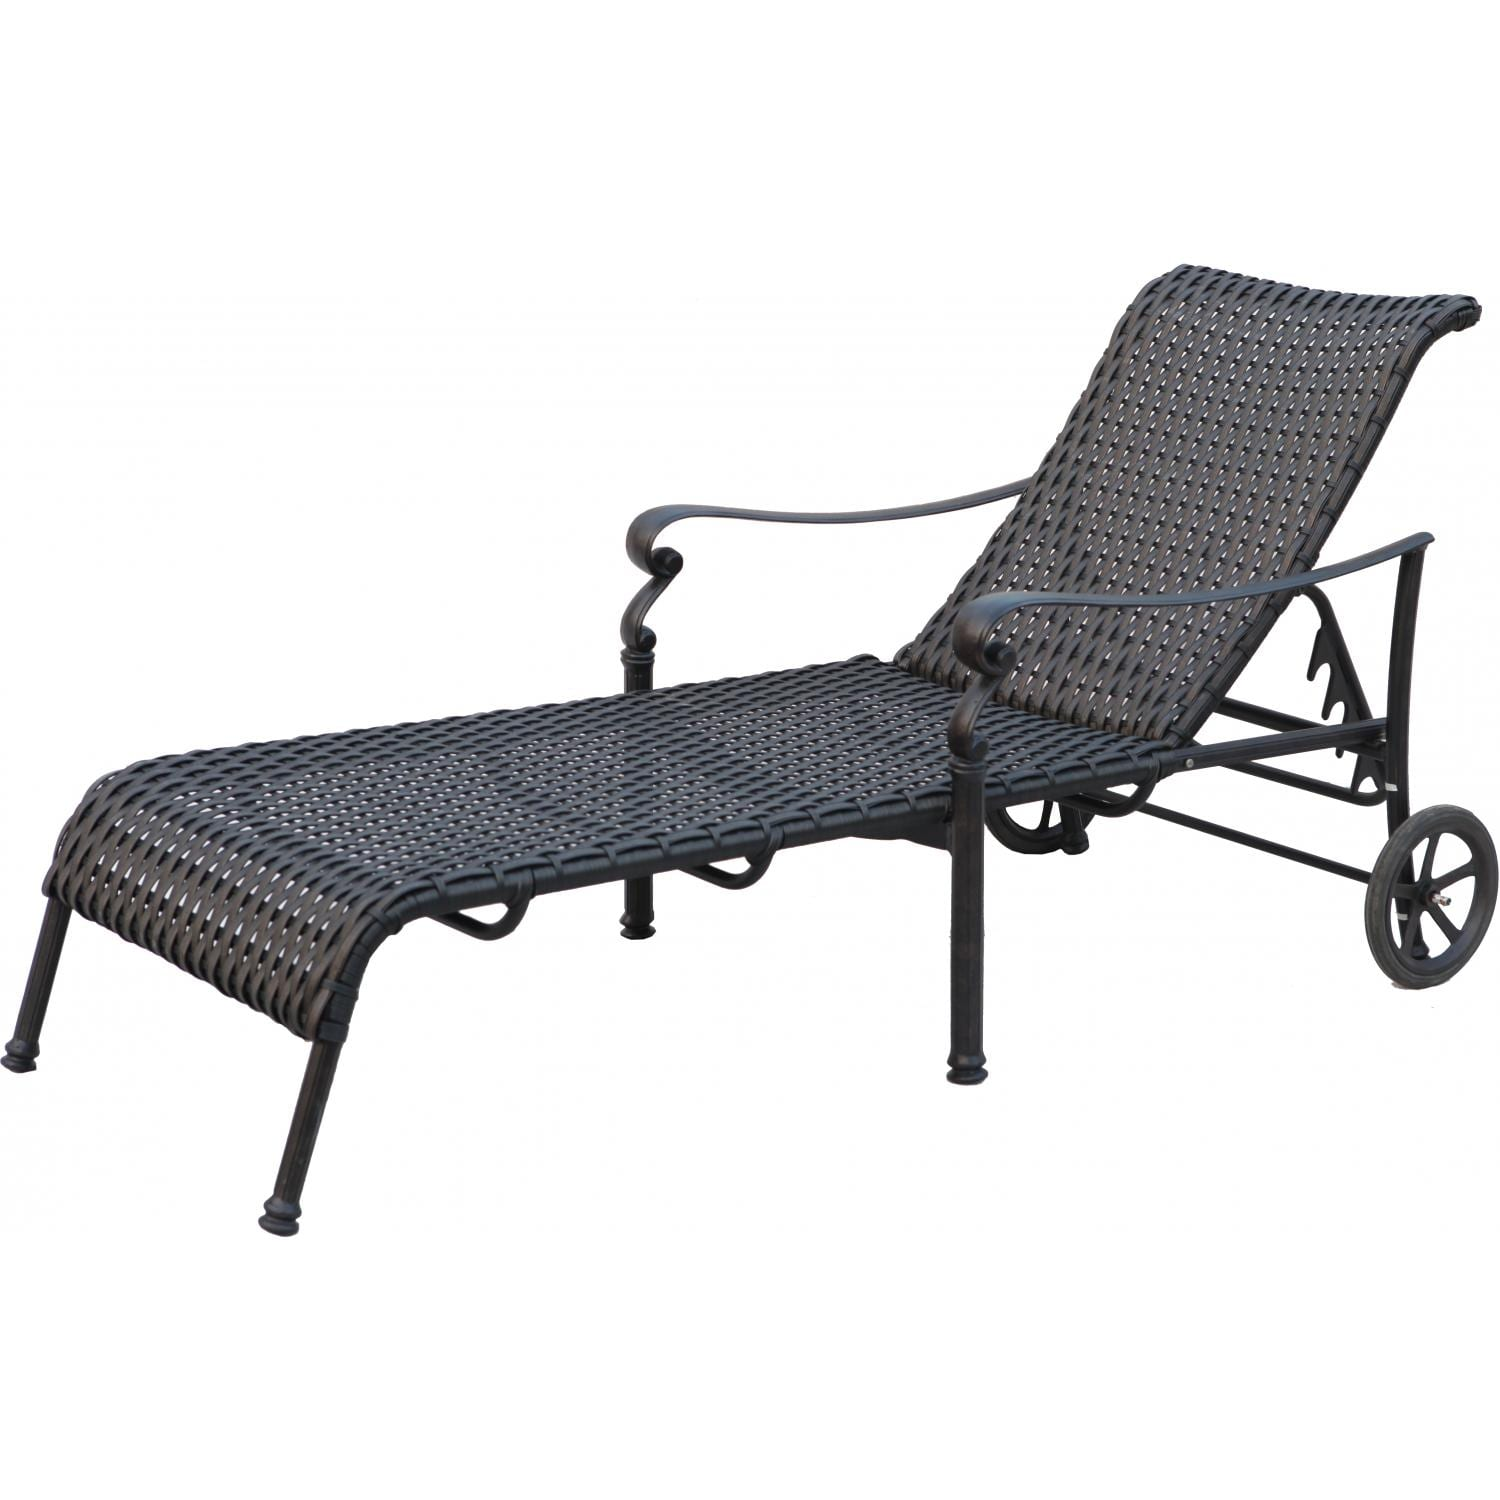 resin chaise lounge chairs round folding lawn darlee victoria wicker patio